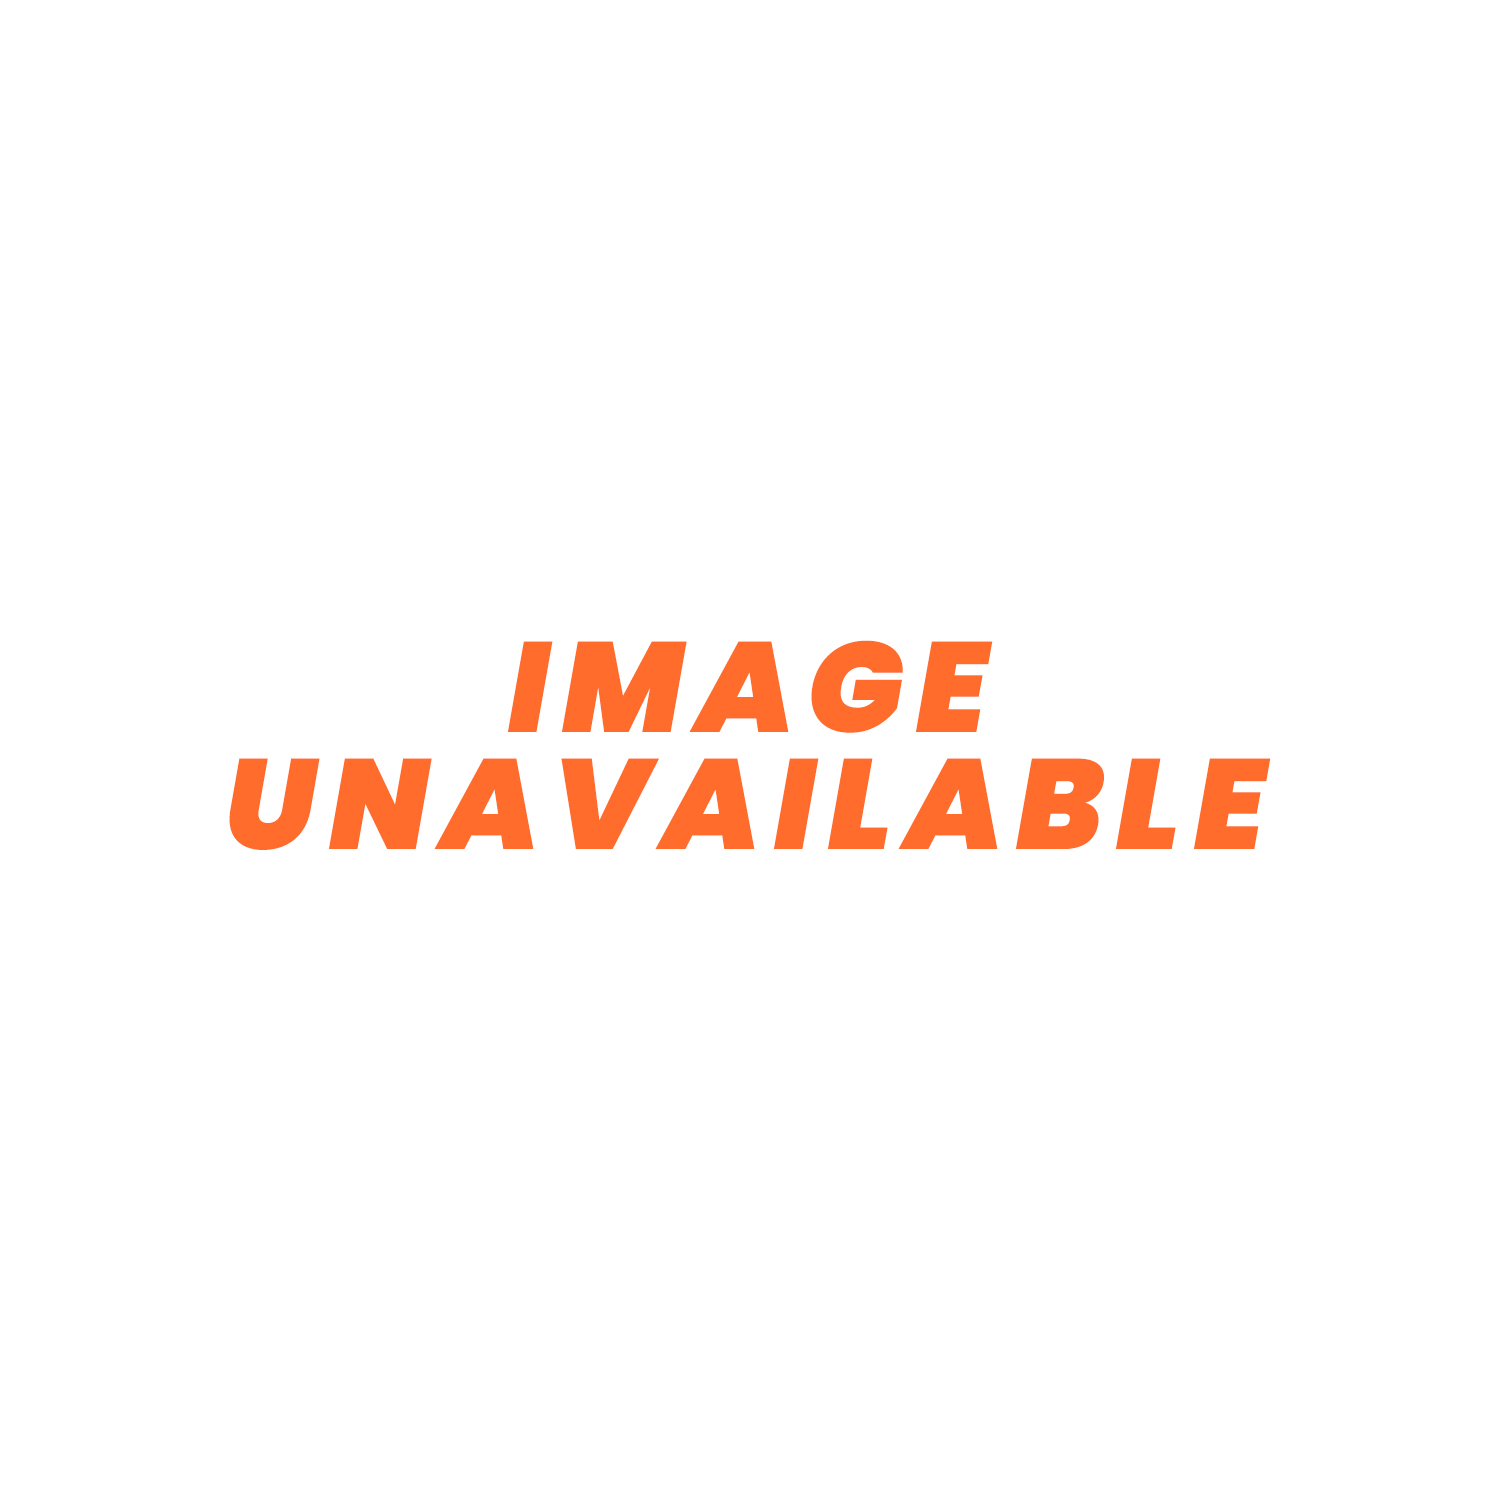 6.1kw Cubby Heater - 24v